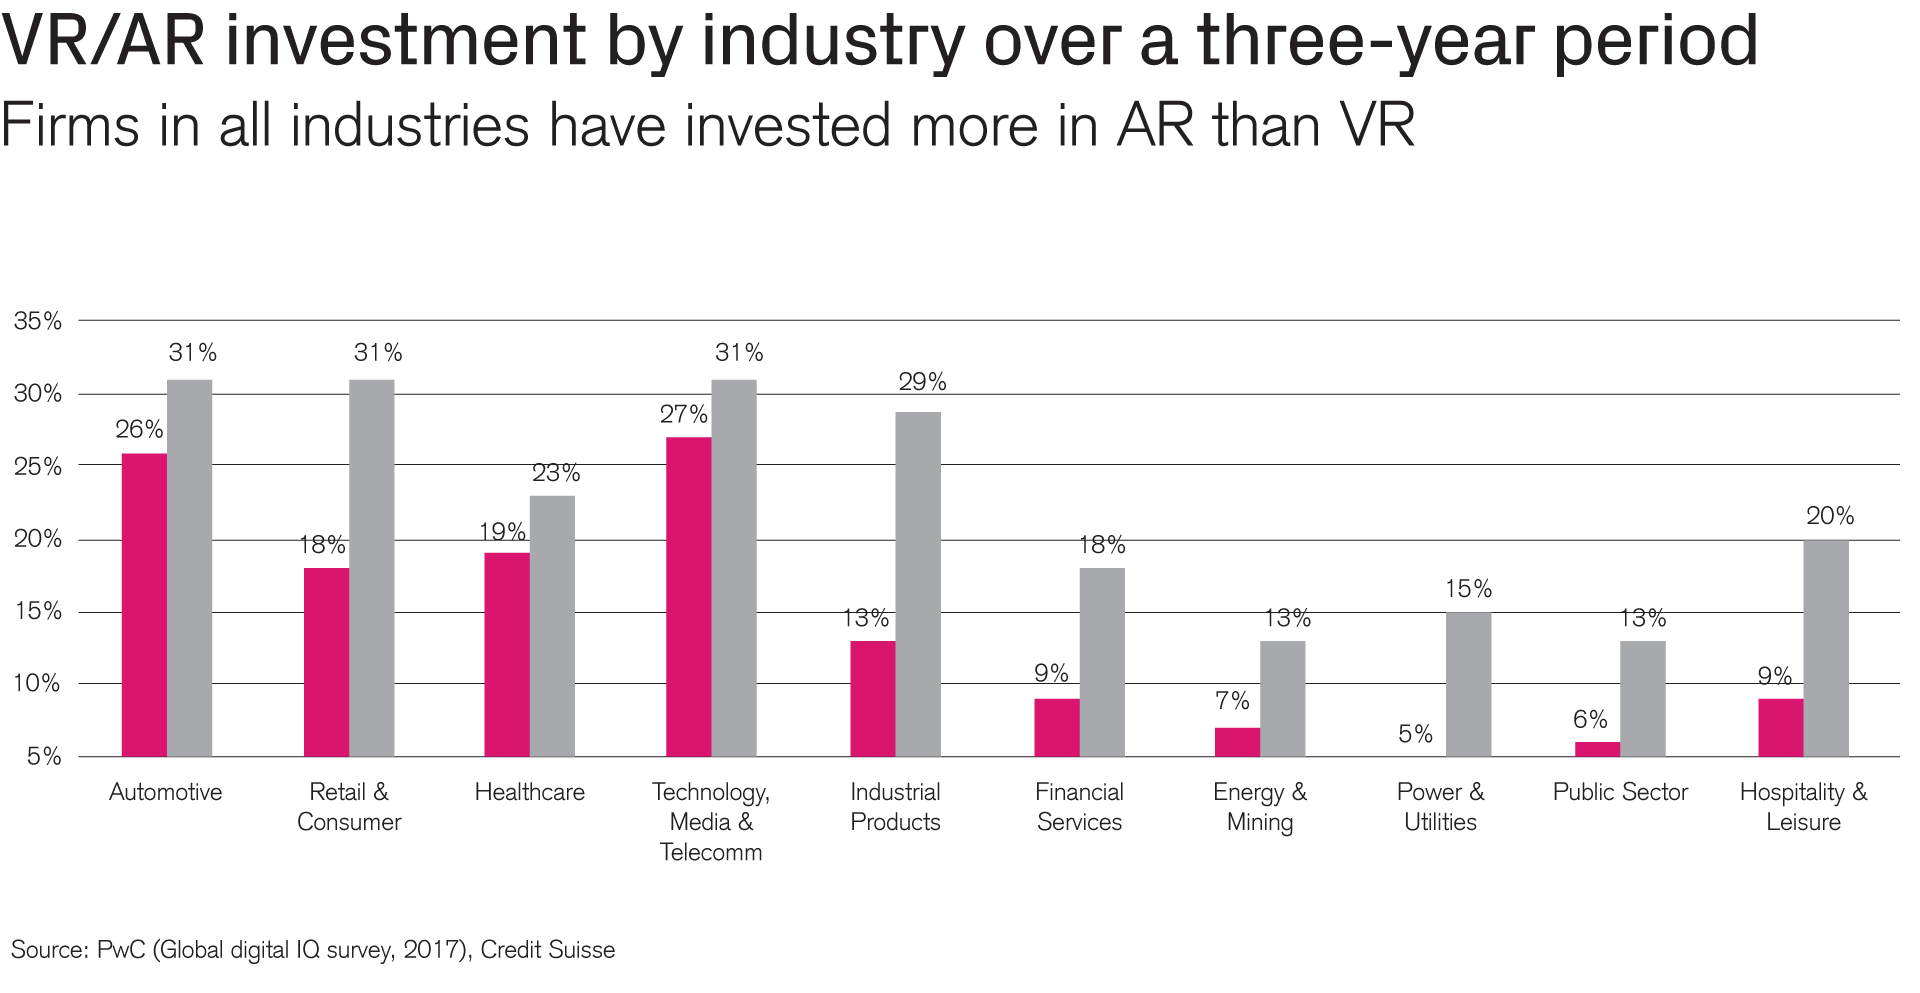 VR/AR investment by industry in three years